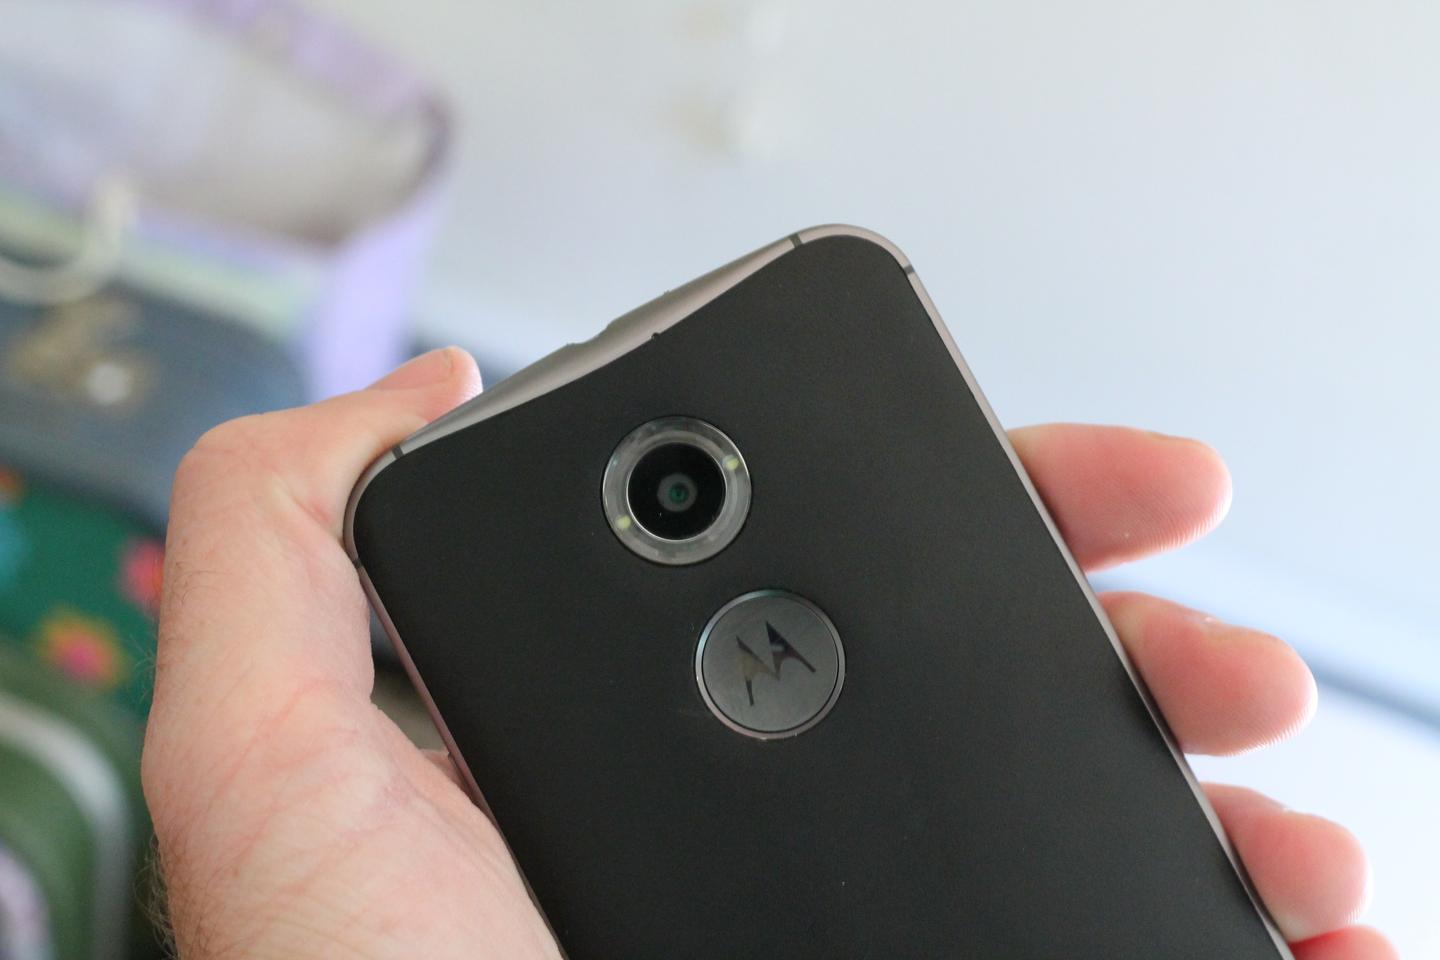 The upgraded Moto X camera has a nifty ring flash (Photo: Eric Mack/Gizmag.com)